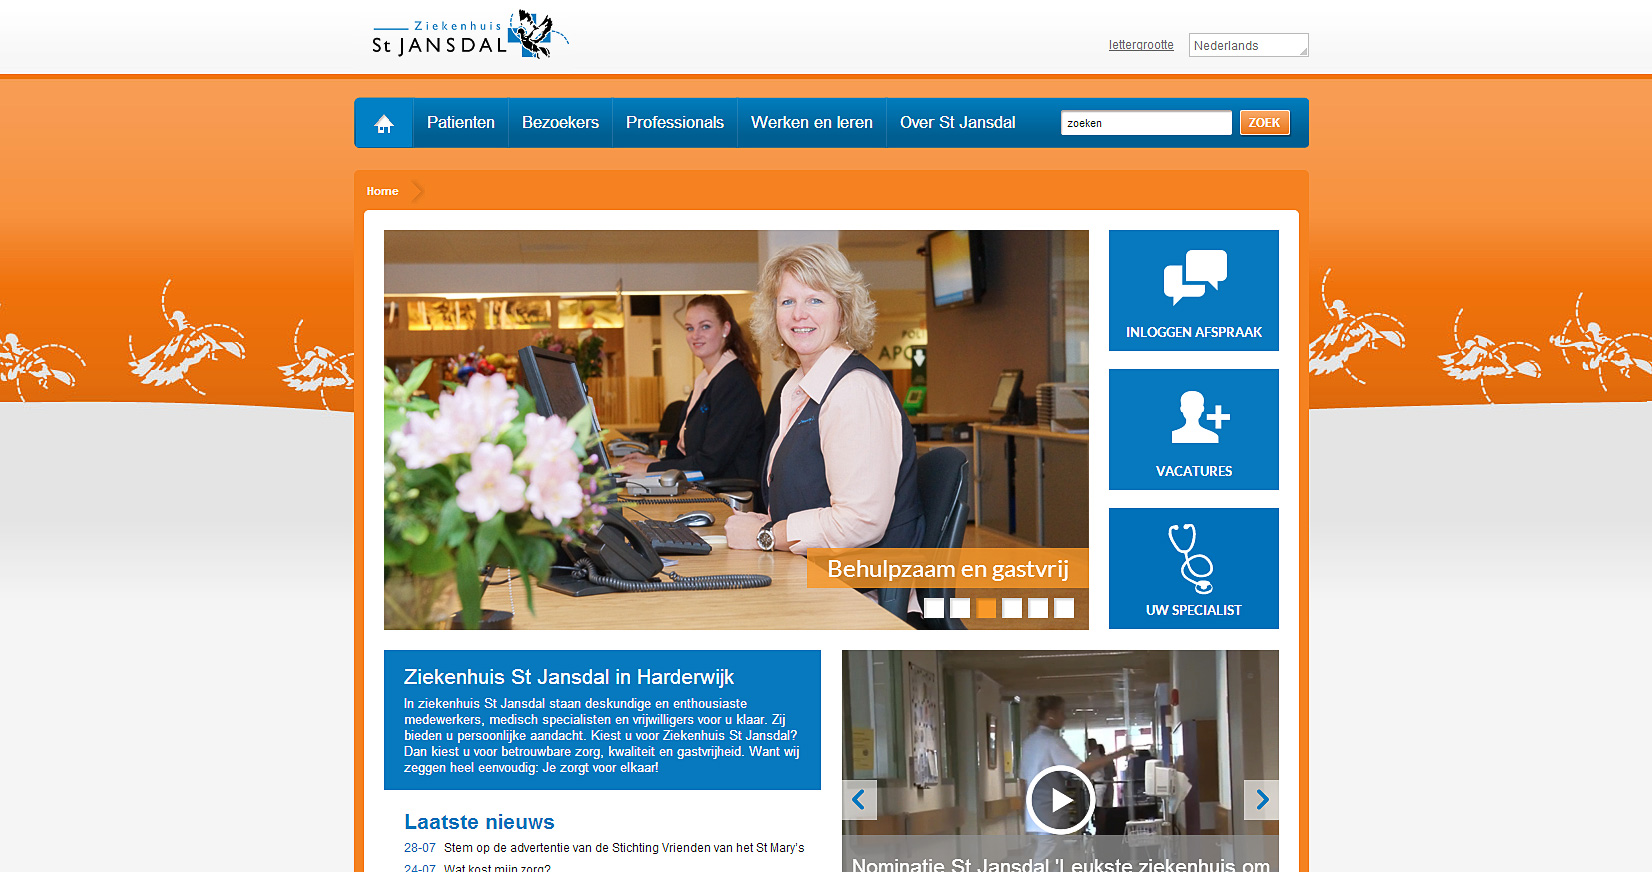 joomla-website-stjansdal